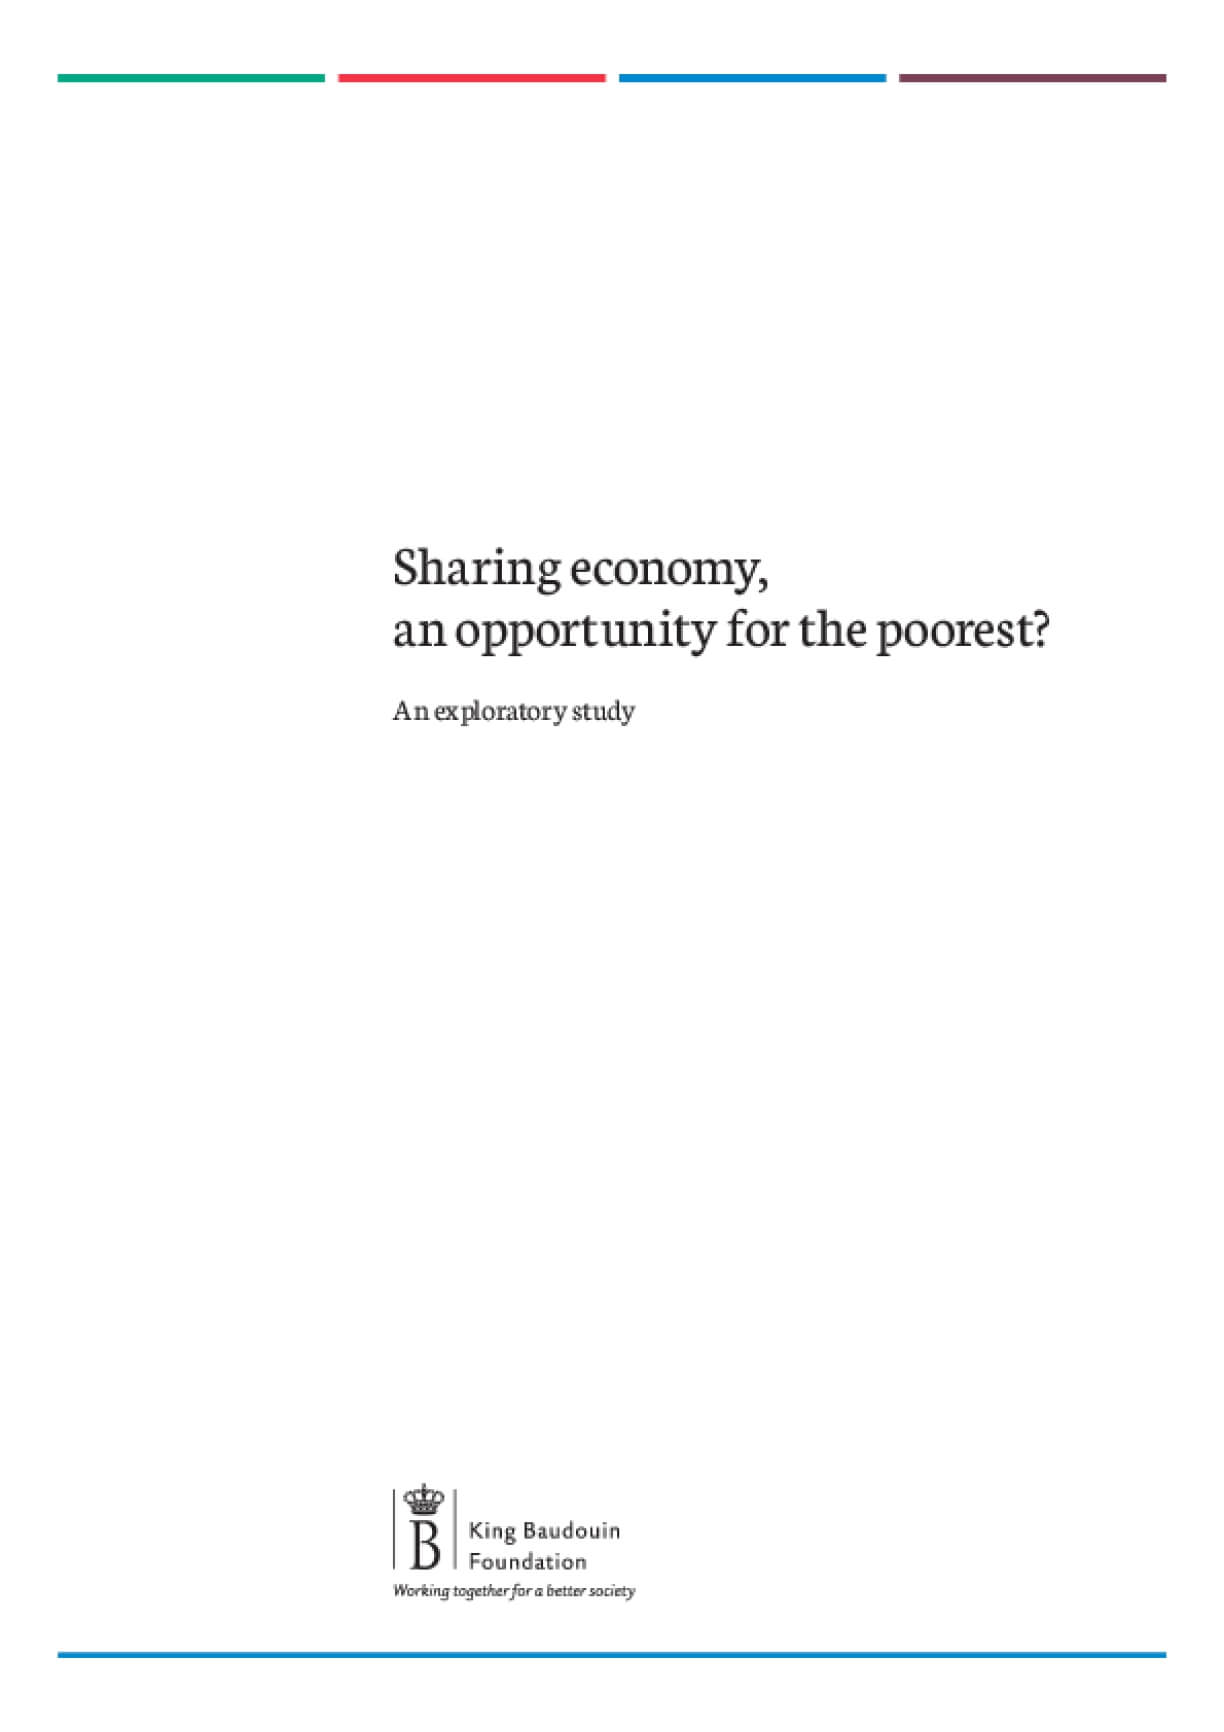 Sharing economy : An opportunity for the poorest? An explanatory study